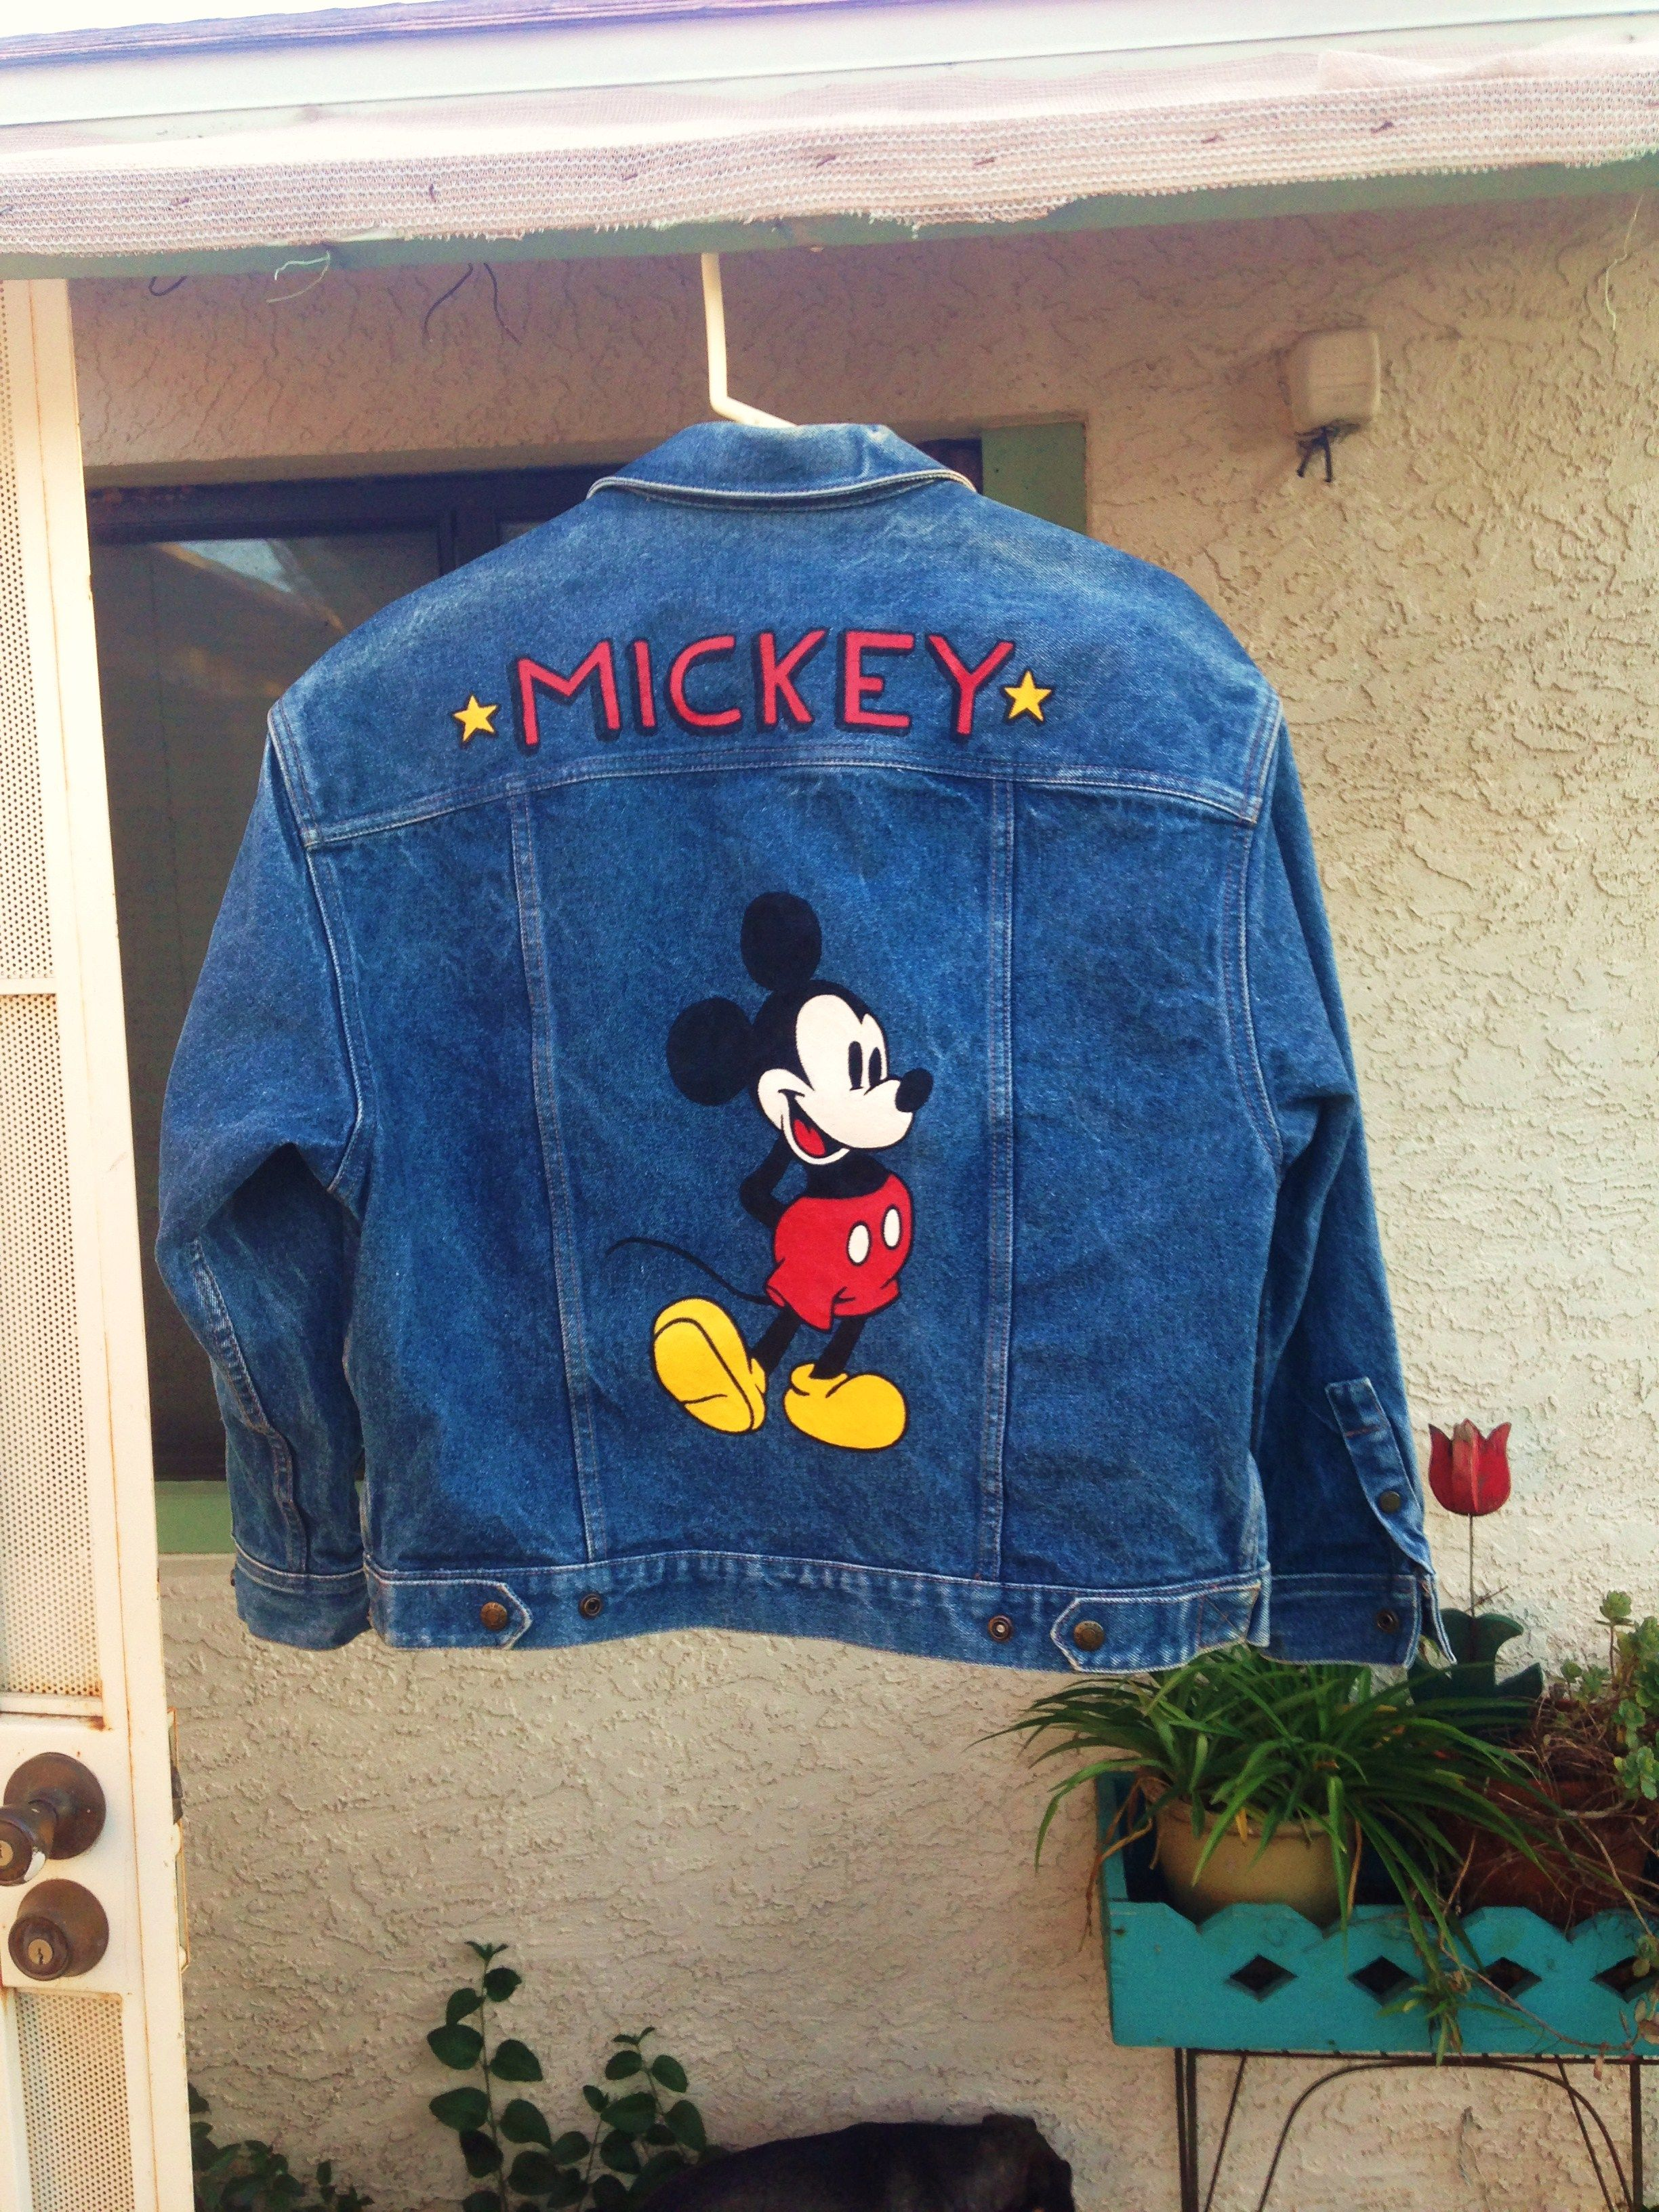 f937489f8c Mickey Mouse custom painted on denim jacket by @bleudoor on ...